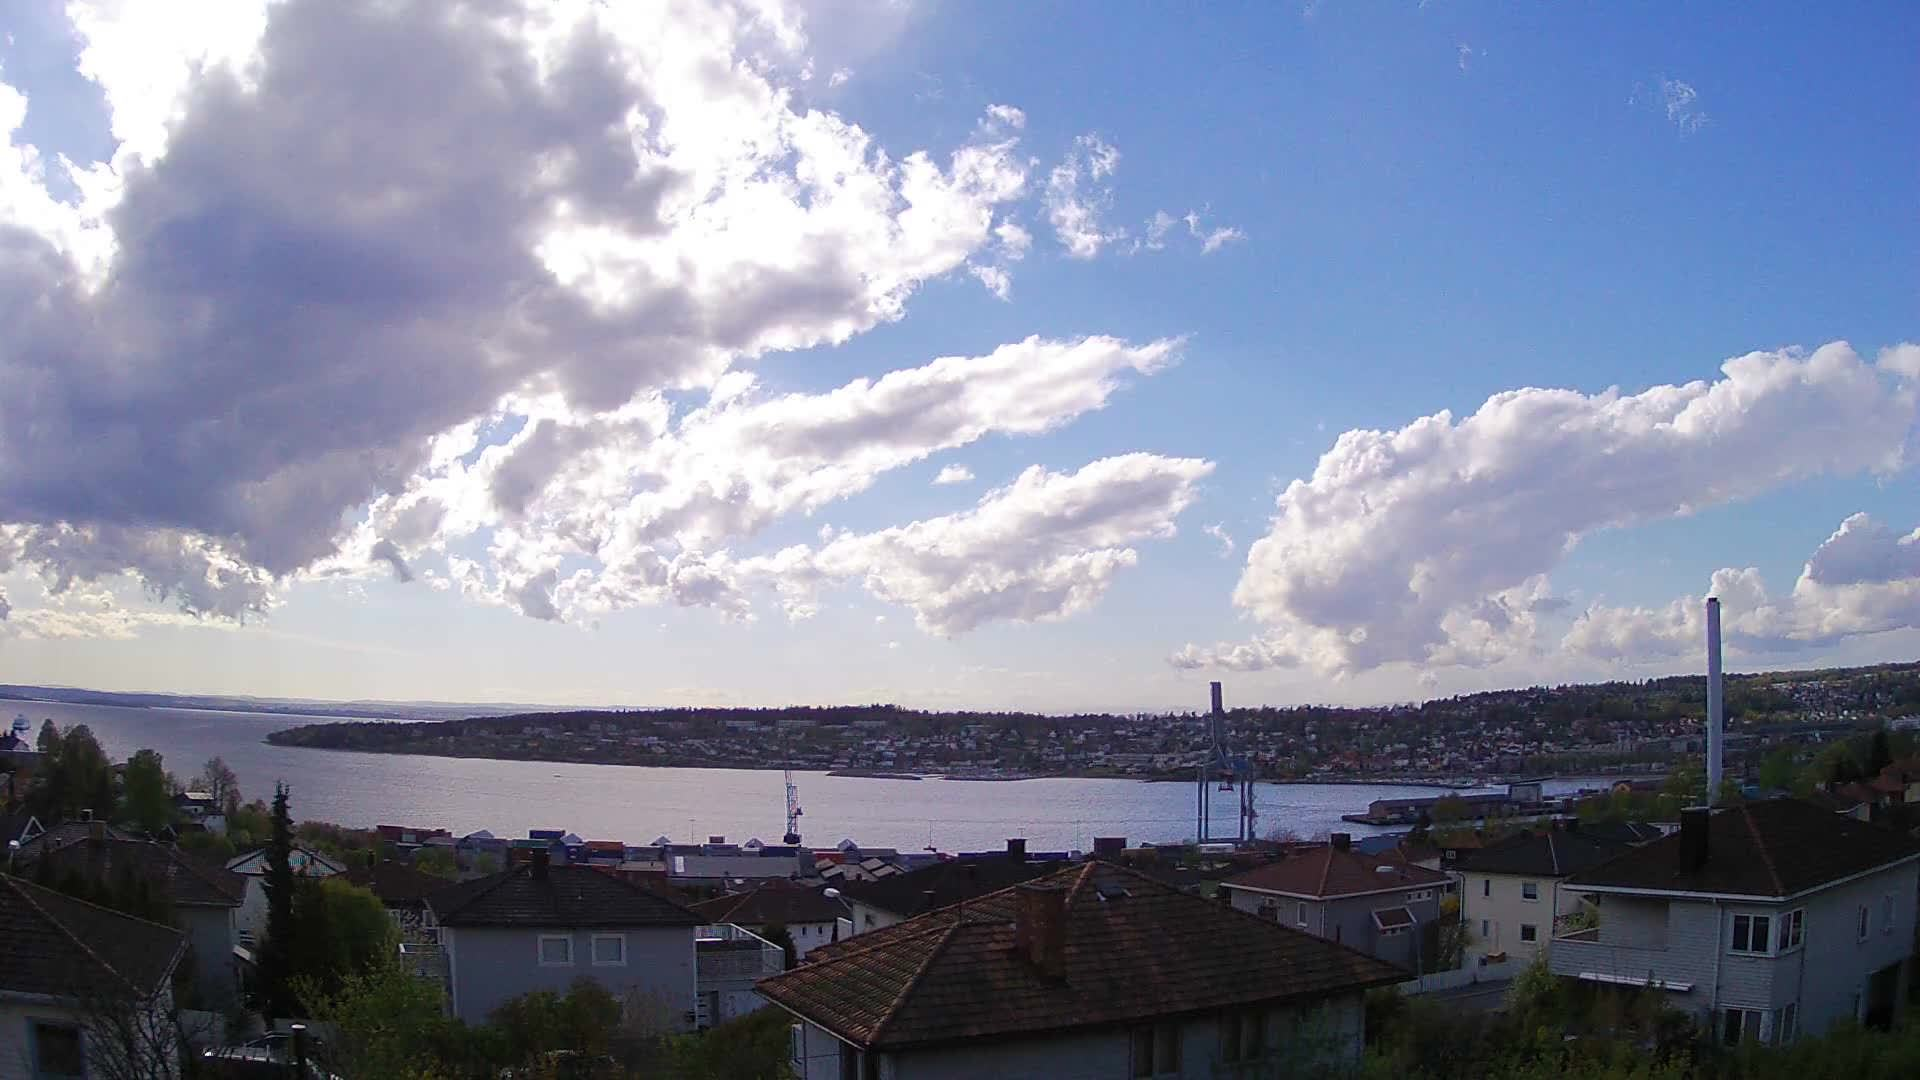 weathergifs, Passing storm in Norway. Time lapse from my old weathercam (reddit) GIFs